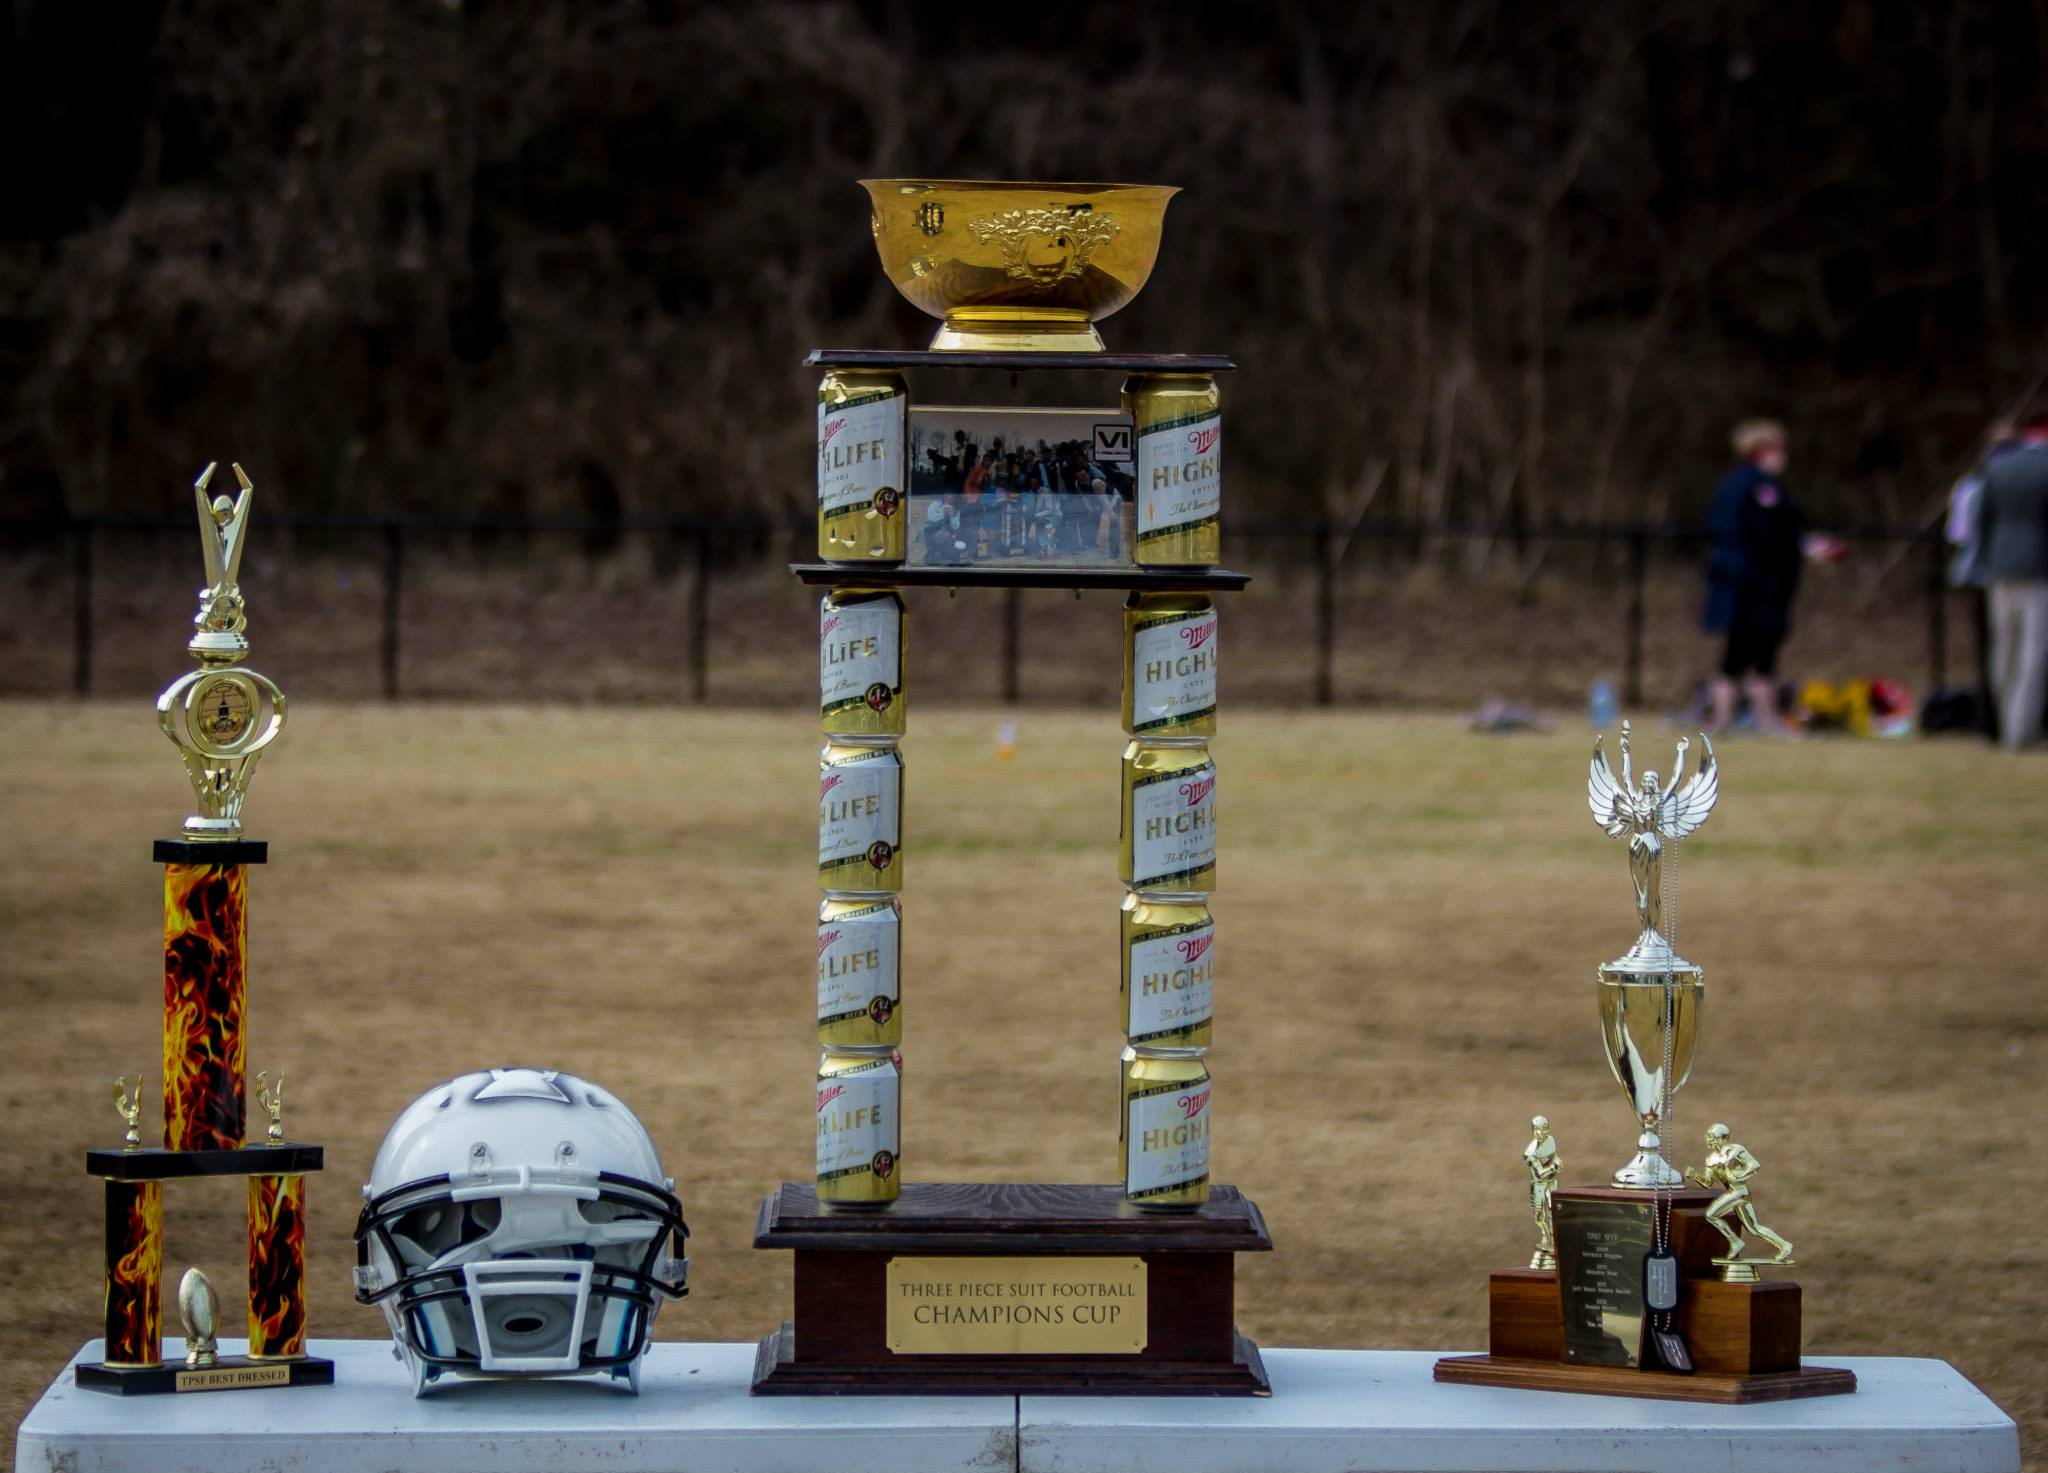 Atlanta Trophies given out at TPSF each year. From left to right: Best Dressed Trophy, Champions Cup, MVP Trophy